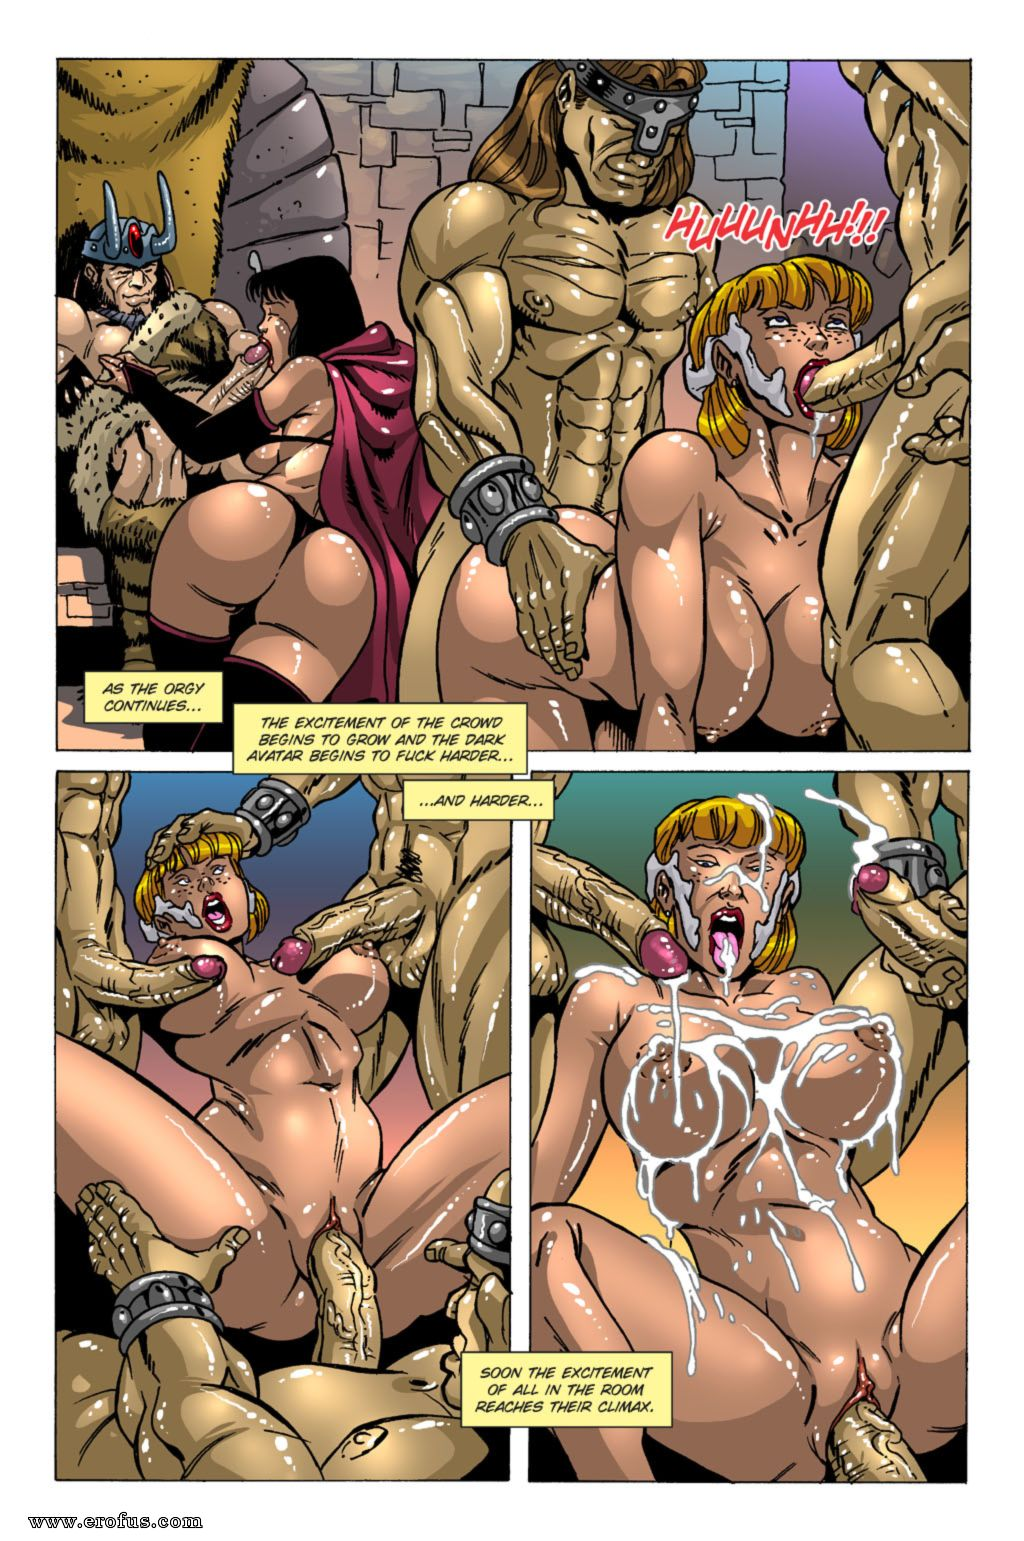 Avatar 2 Porn page 4 | various-authors/augustus-rom-freire/dark-gods/issue